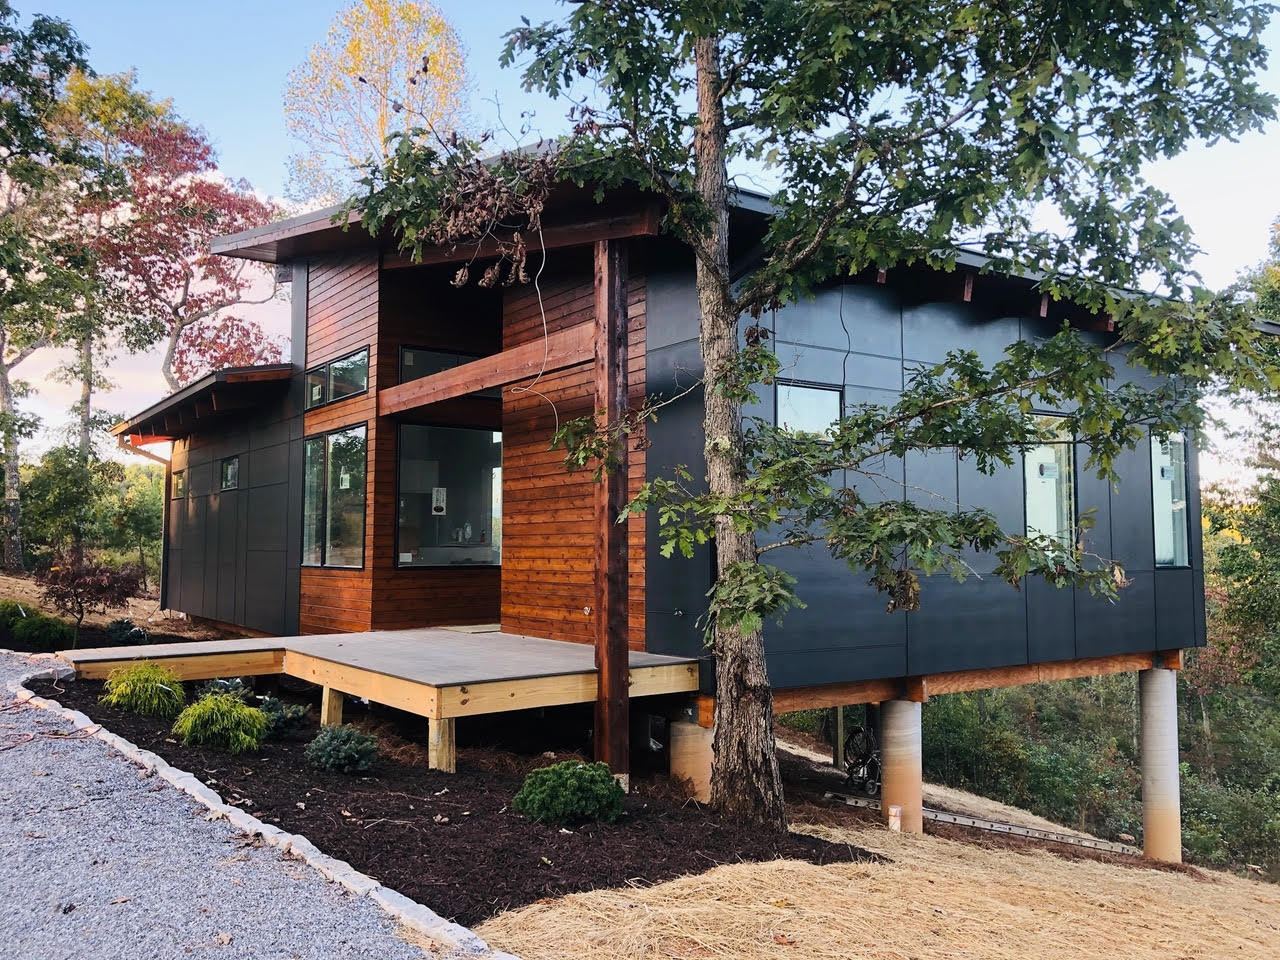 North of Atlanta, community of mini moderns in the mountains is priced from $275K